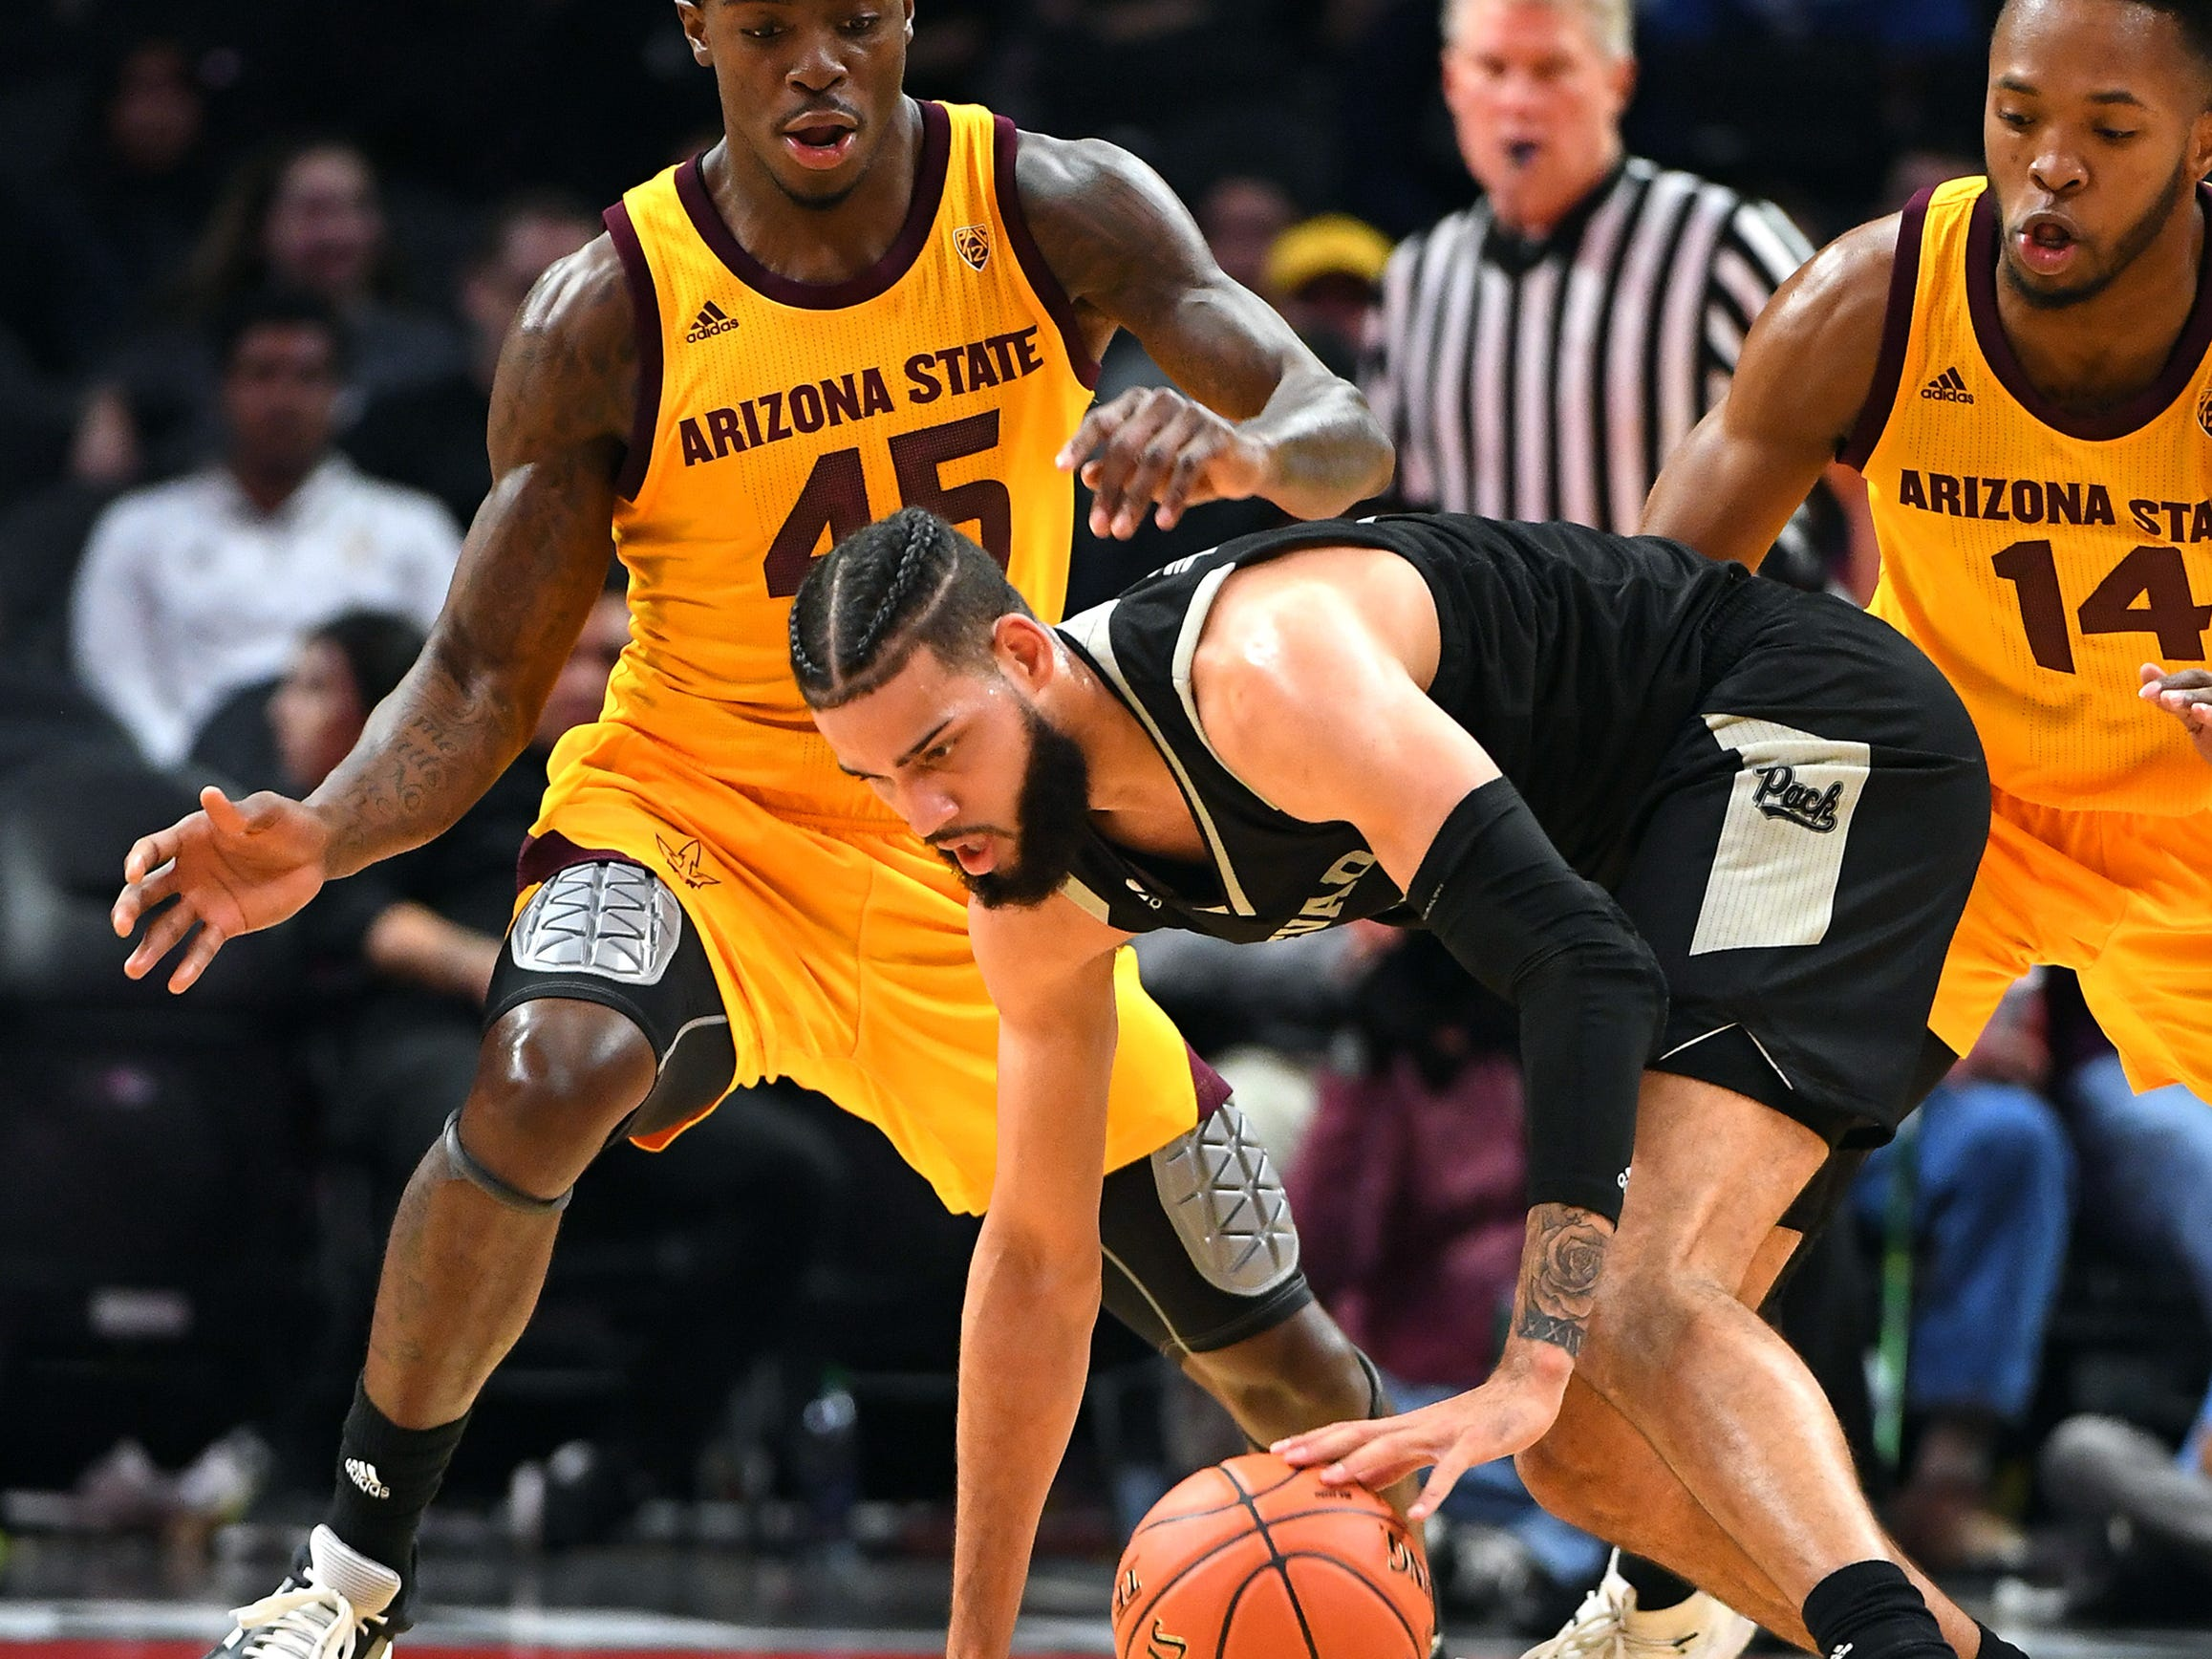 Dec 7, 2018; Los Angeles, CA, USA;  Arizona State Sun Devils forward Zylan Cheatham (45) and forward Kimani Lawrence (14) pressure Nevada Wolf Pack forward Cody Martin (11) as he takes it down court in the first half of the game at Staples Center. Mandatory Credit: Jayne Kamin-Oncea-USA TODAY Sports